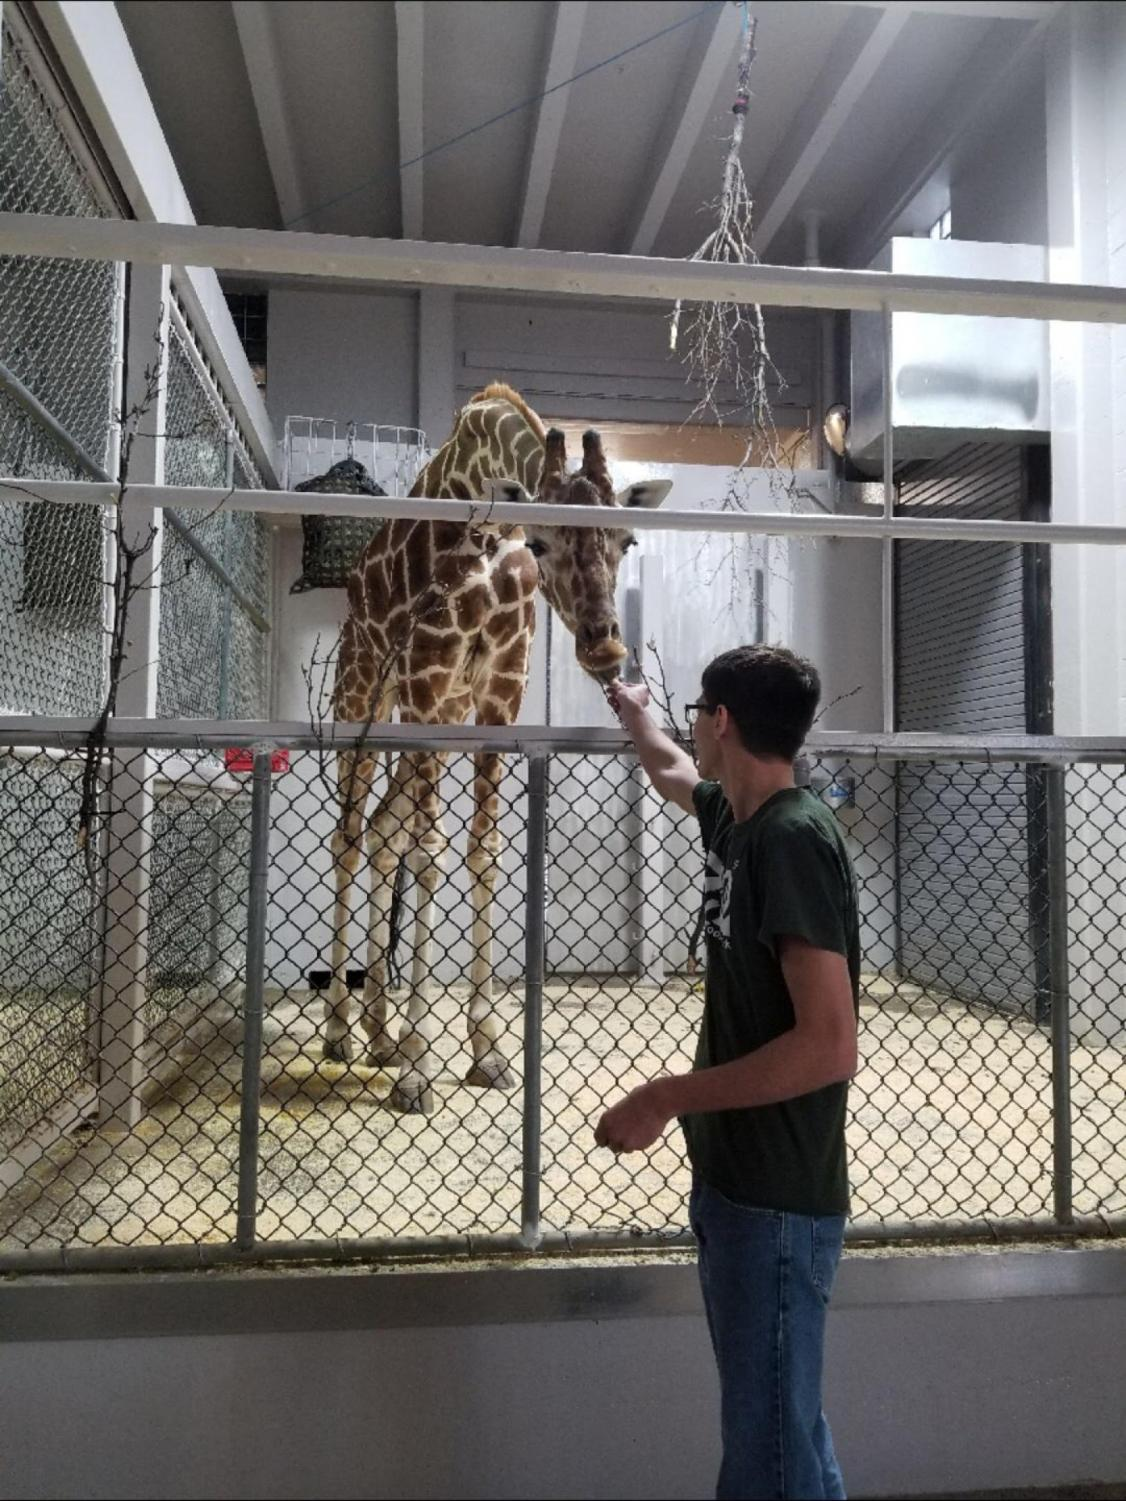 During his time as an intern, senior Caleb Drane feeds giraffe, Sgt. Pepper, his midday snack